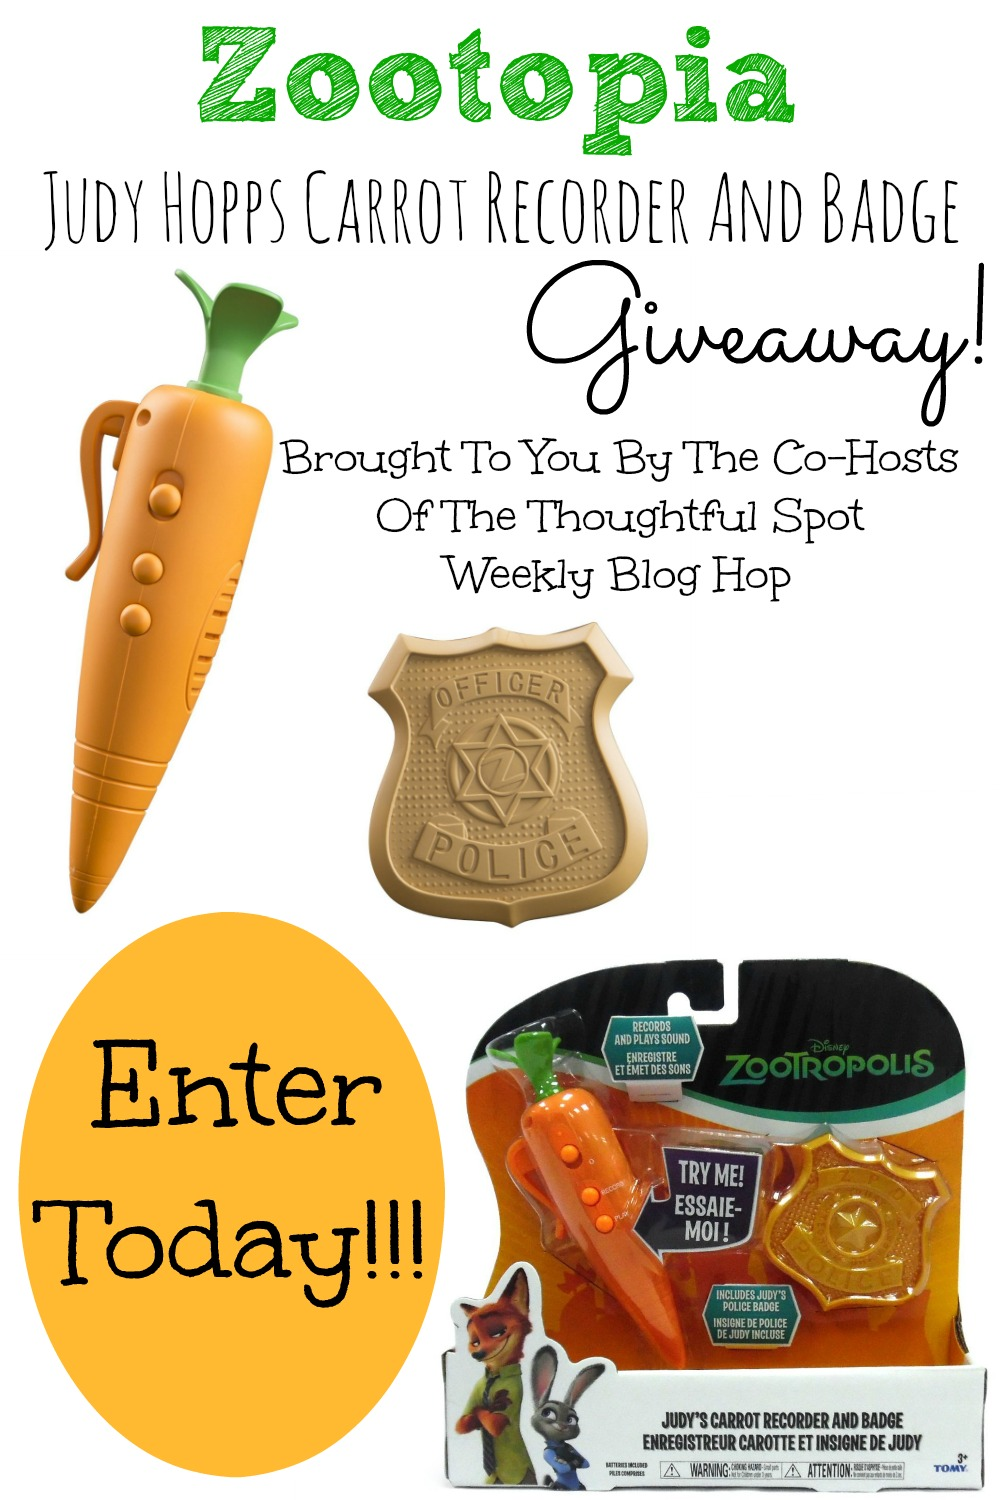 Thoughtful Spot Weekly Blog Hop Giveaway Zootopia